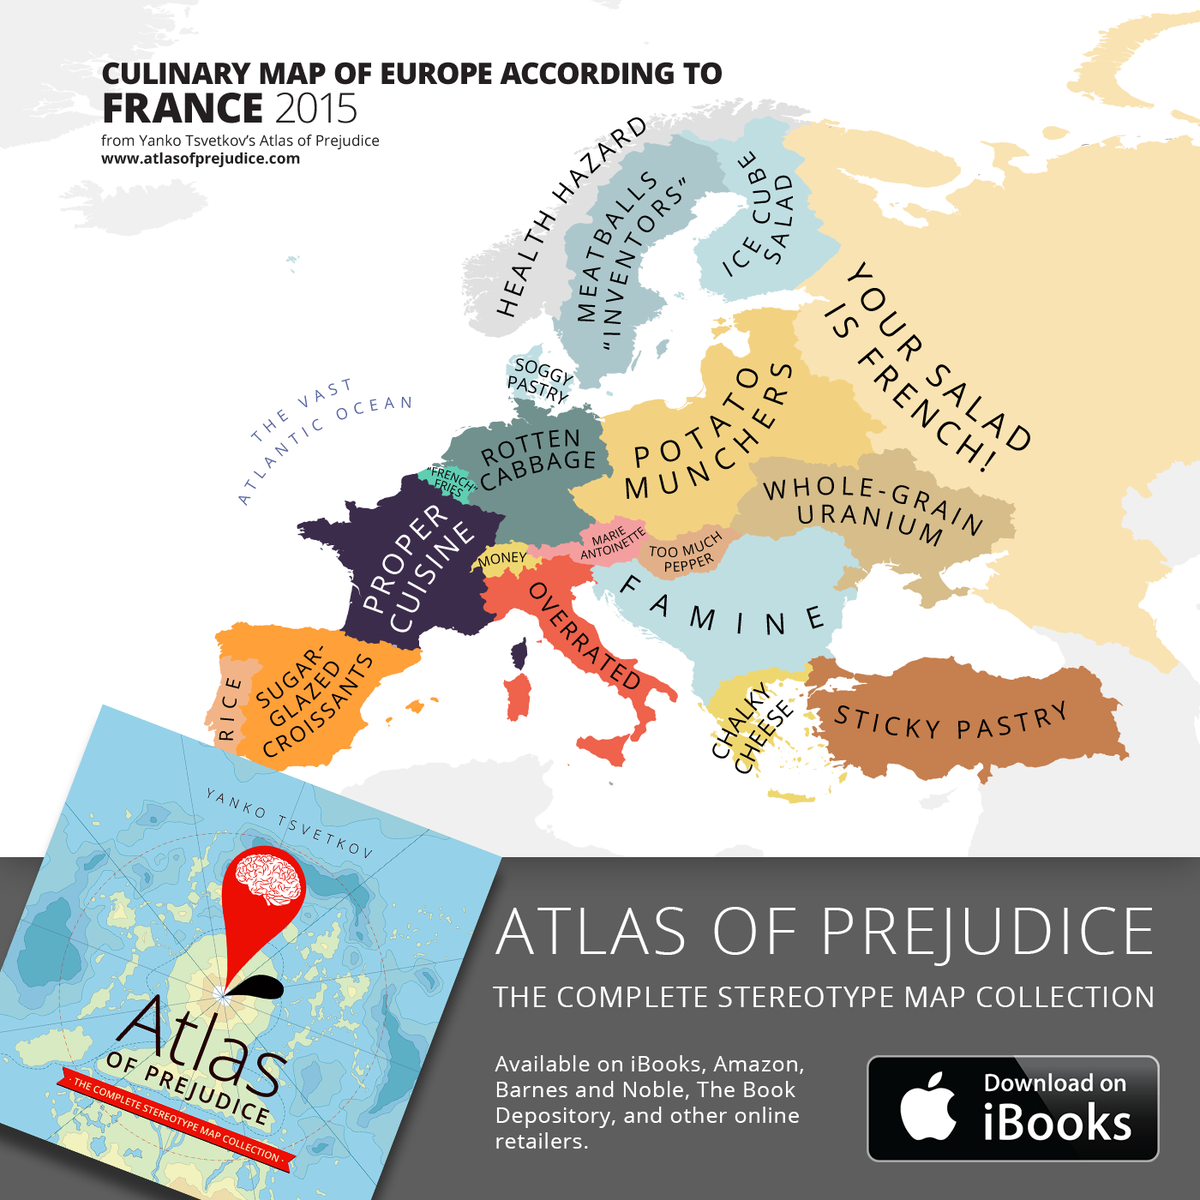 Yanko tsvetkov on twitter the atlas of prejudice your brand new yanko tsvetkov on twitter the atlas of prejudice your brand new cooking companion now on ibooks httpstnwrcyypdu4 httptad66seplko gumiabroncs Choice Image